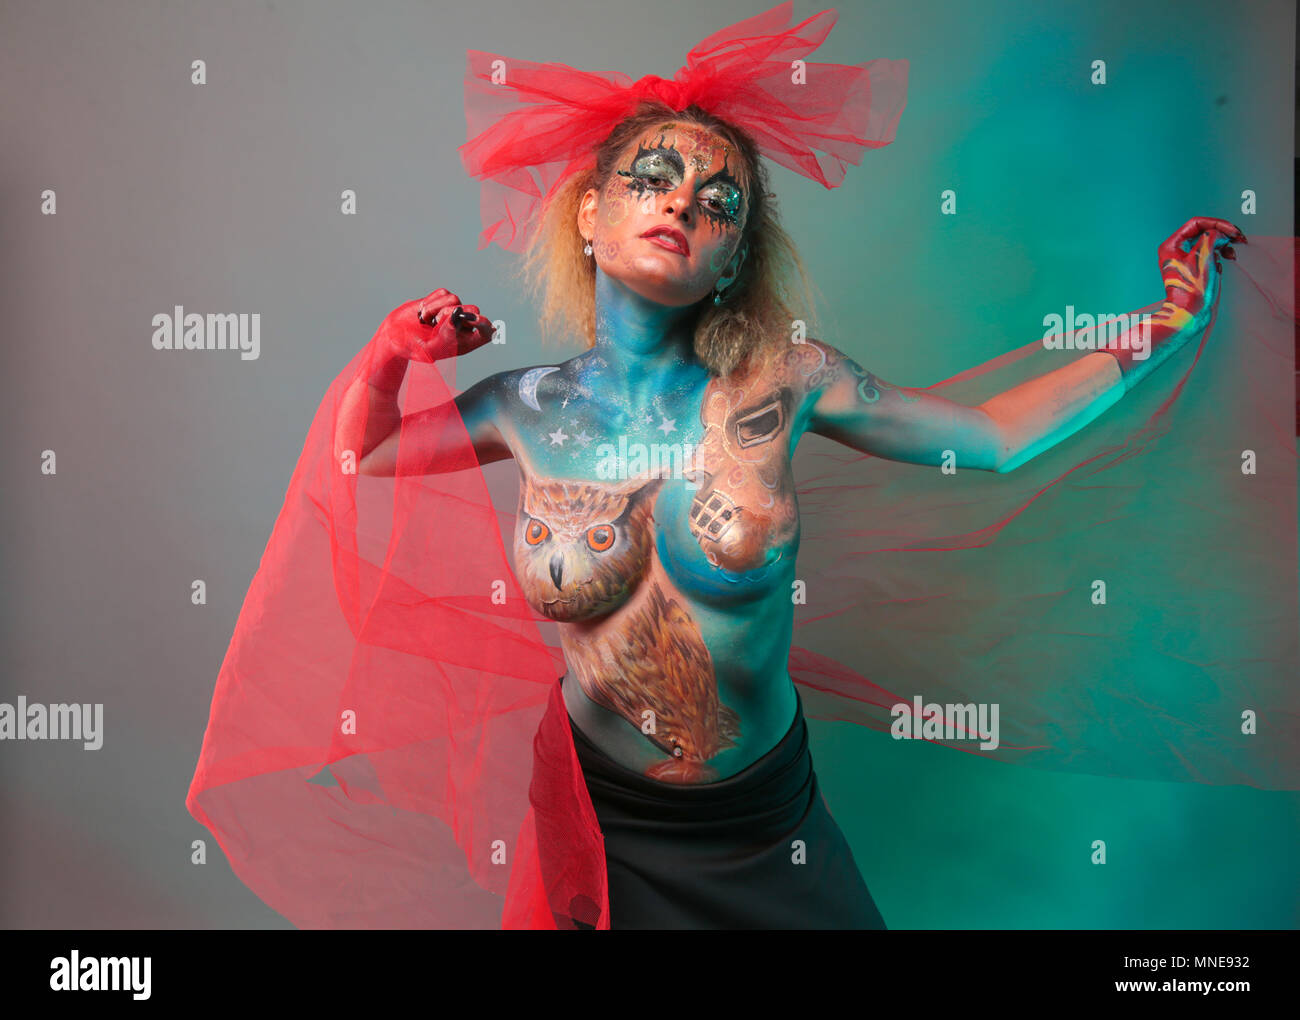 Body Painting Festival High Resolution Stock Photography And Images Alamy